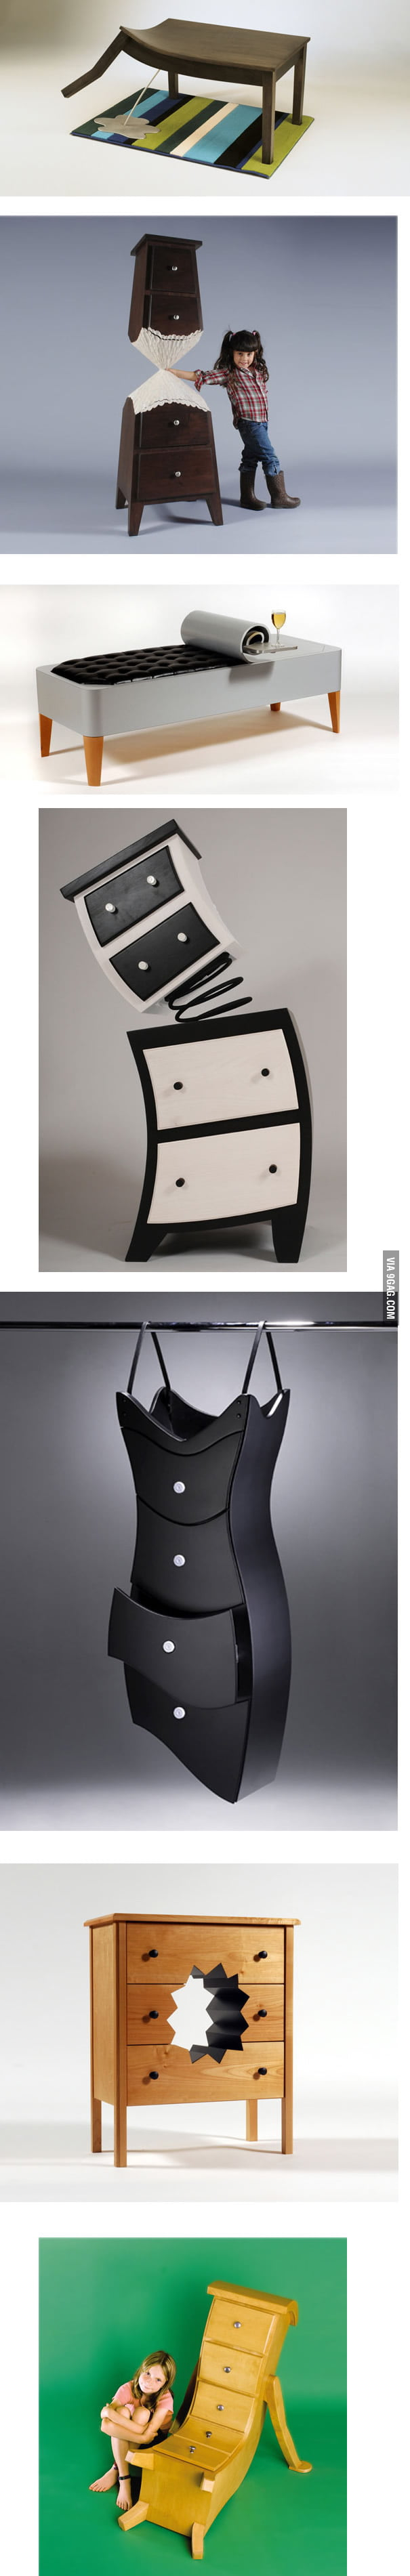 Weird and Wacky Furniture